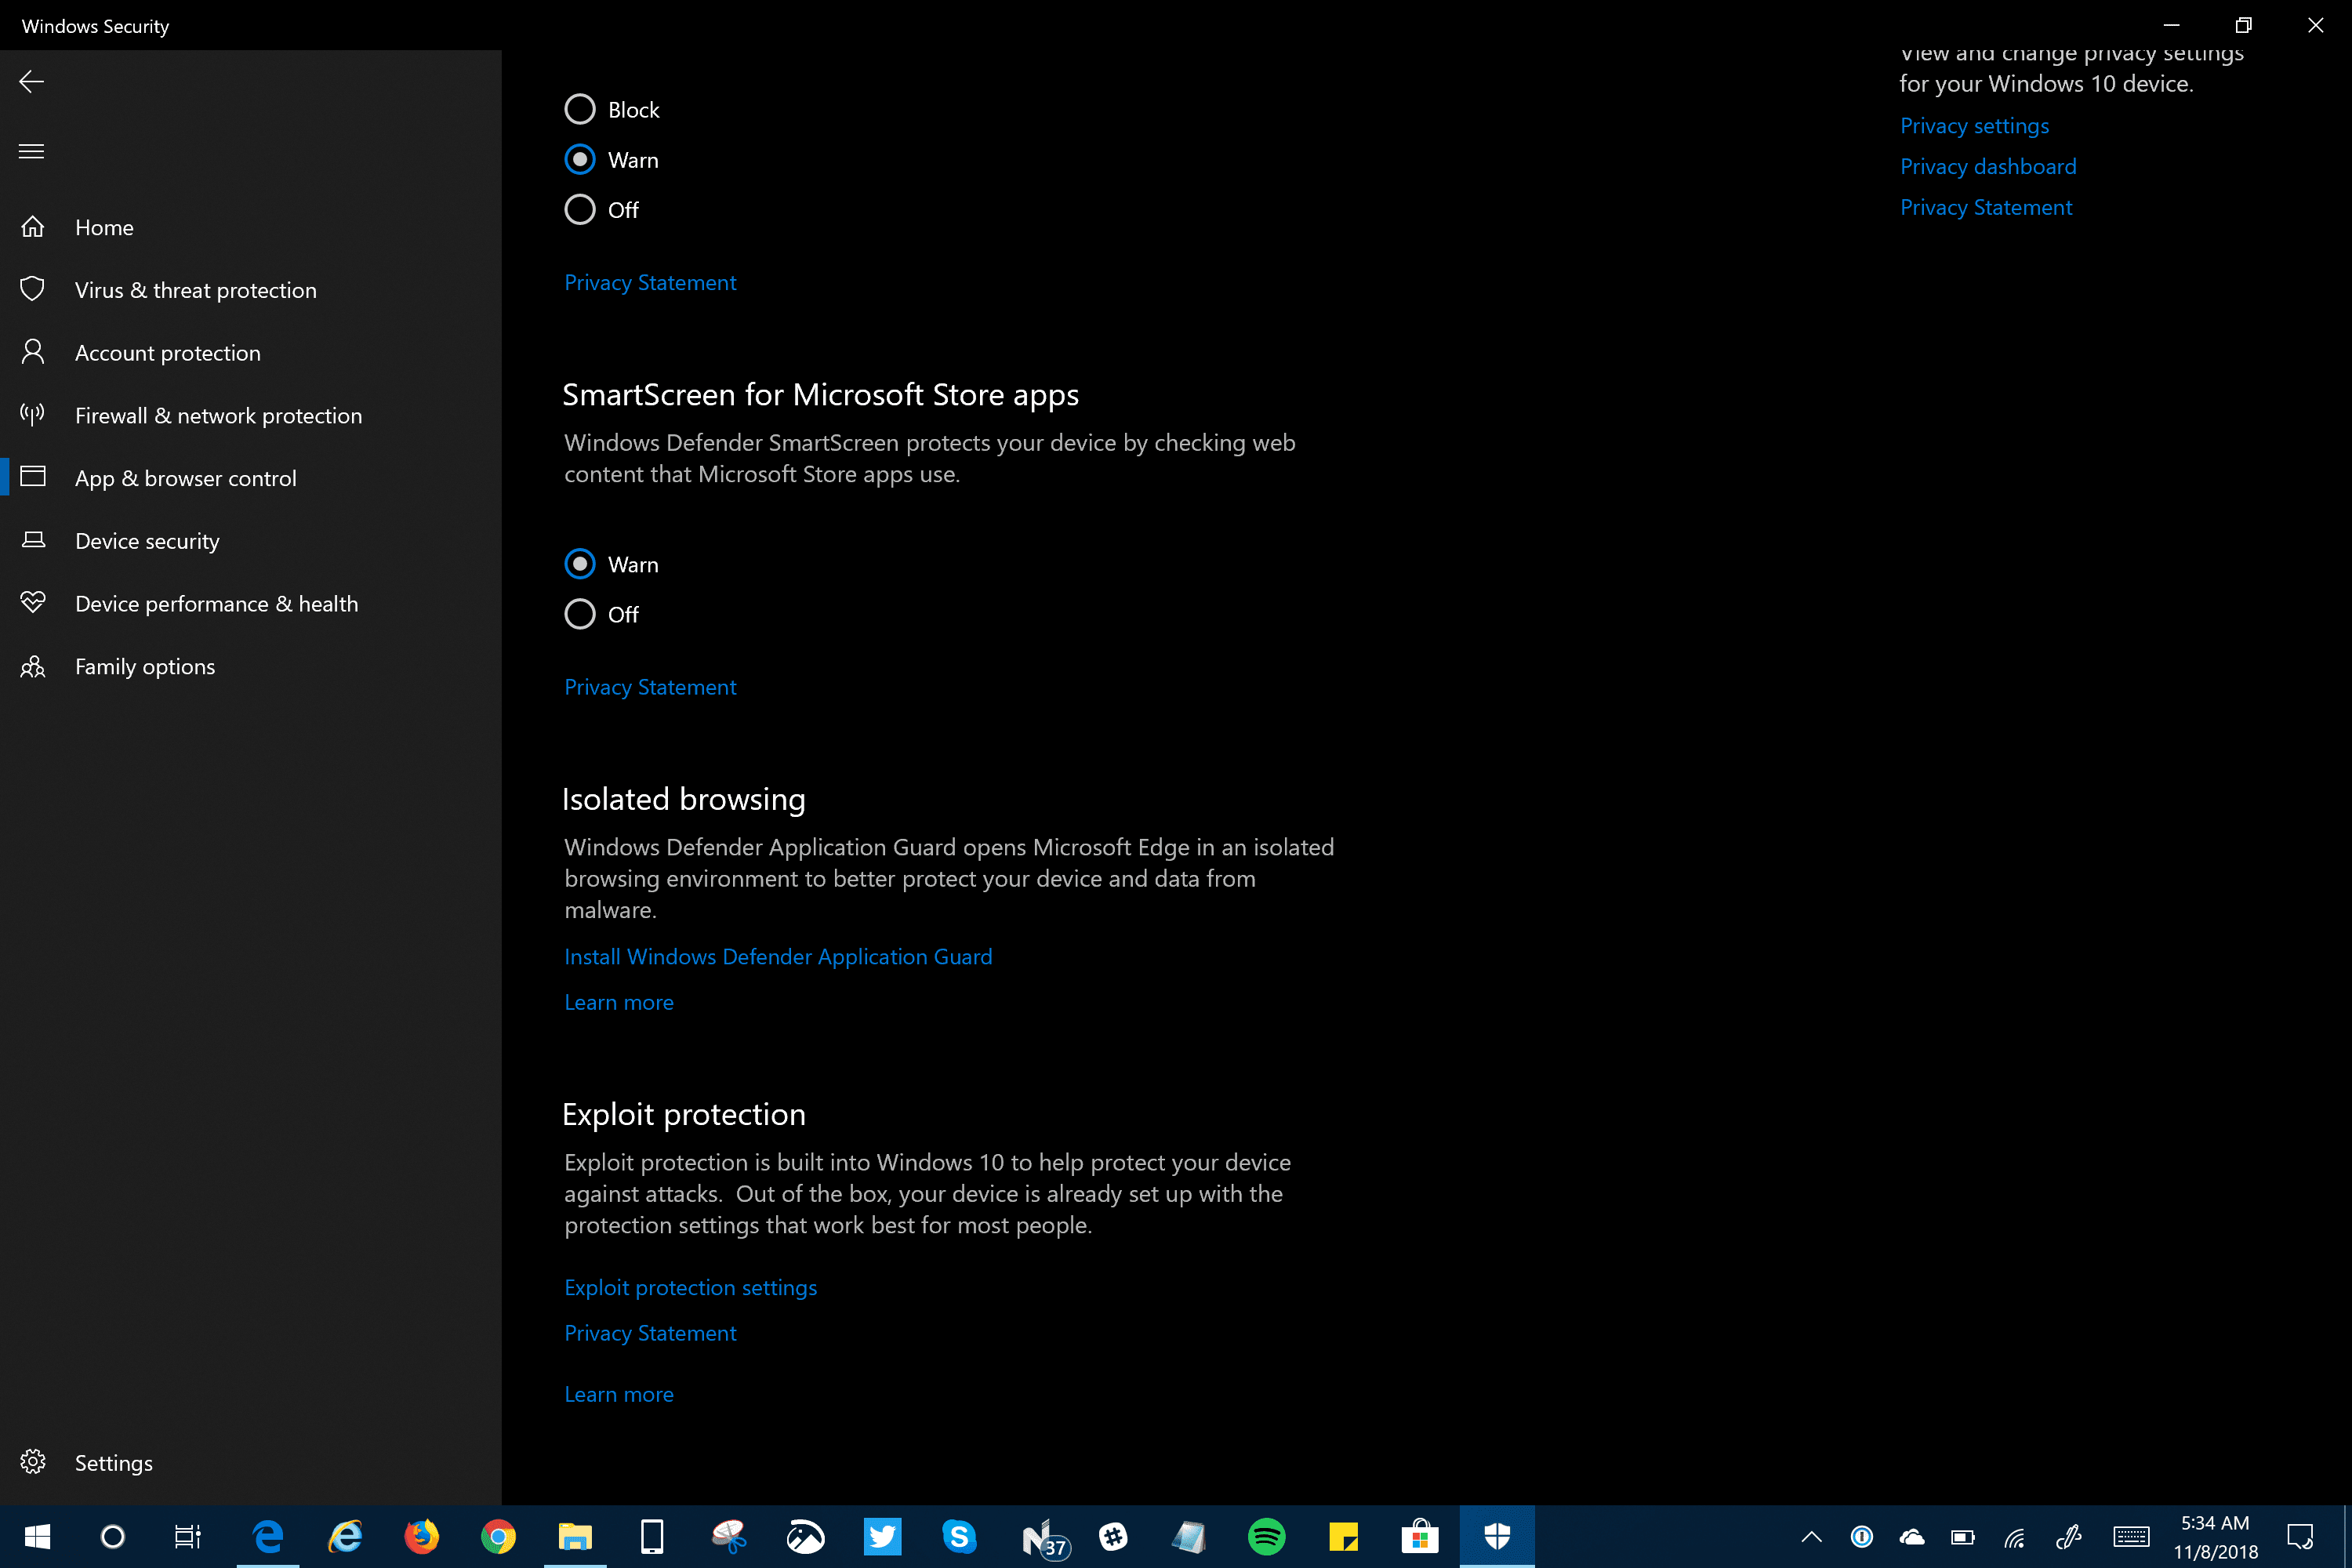 Windows 10 19H1 Build 18277